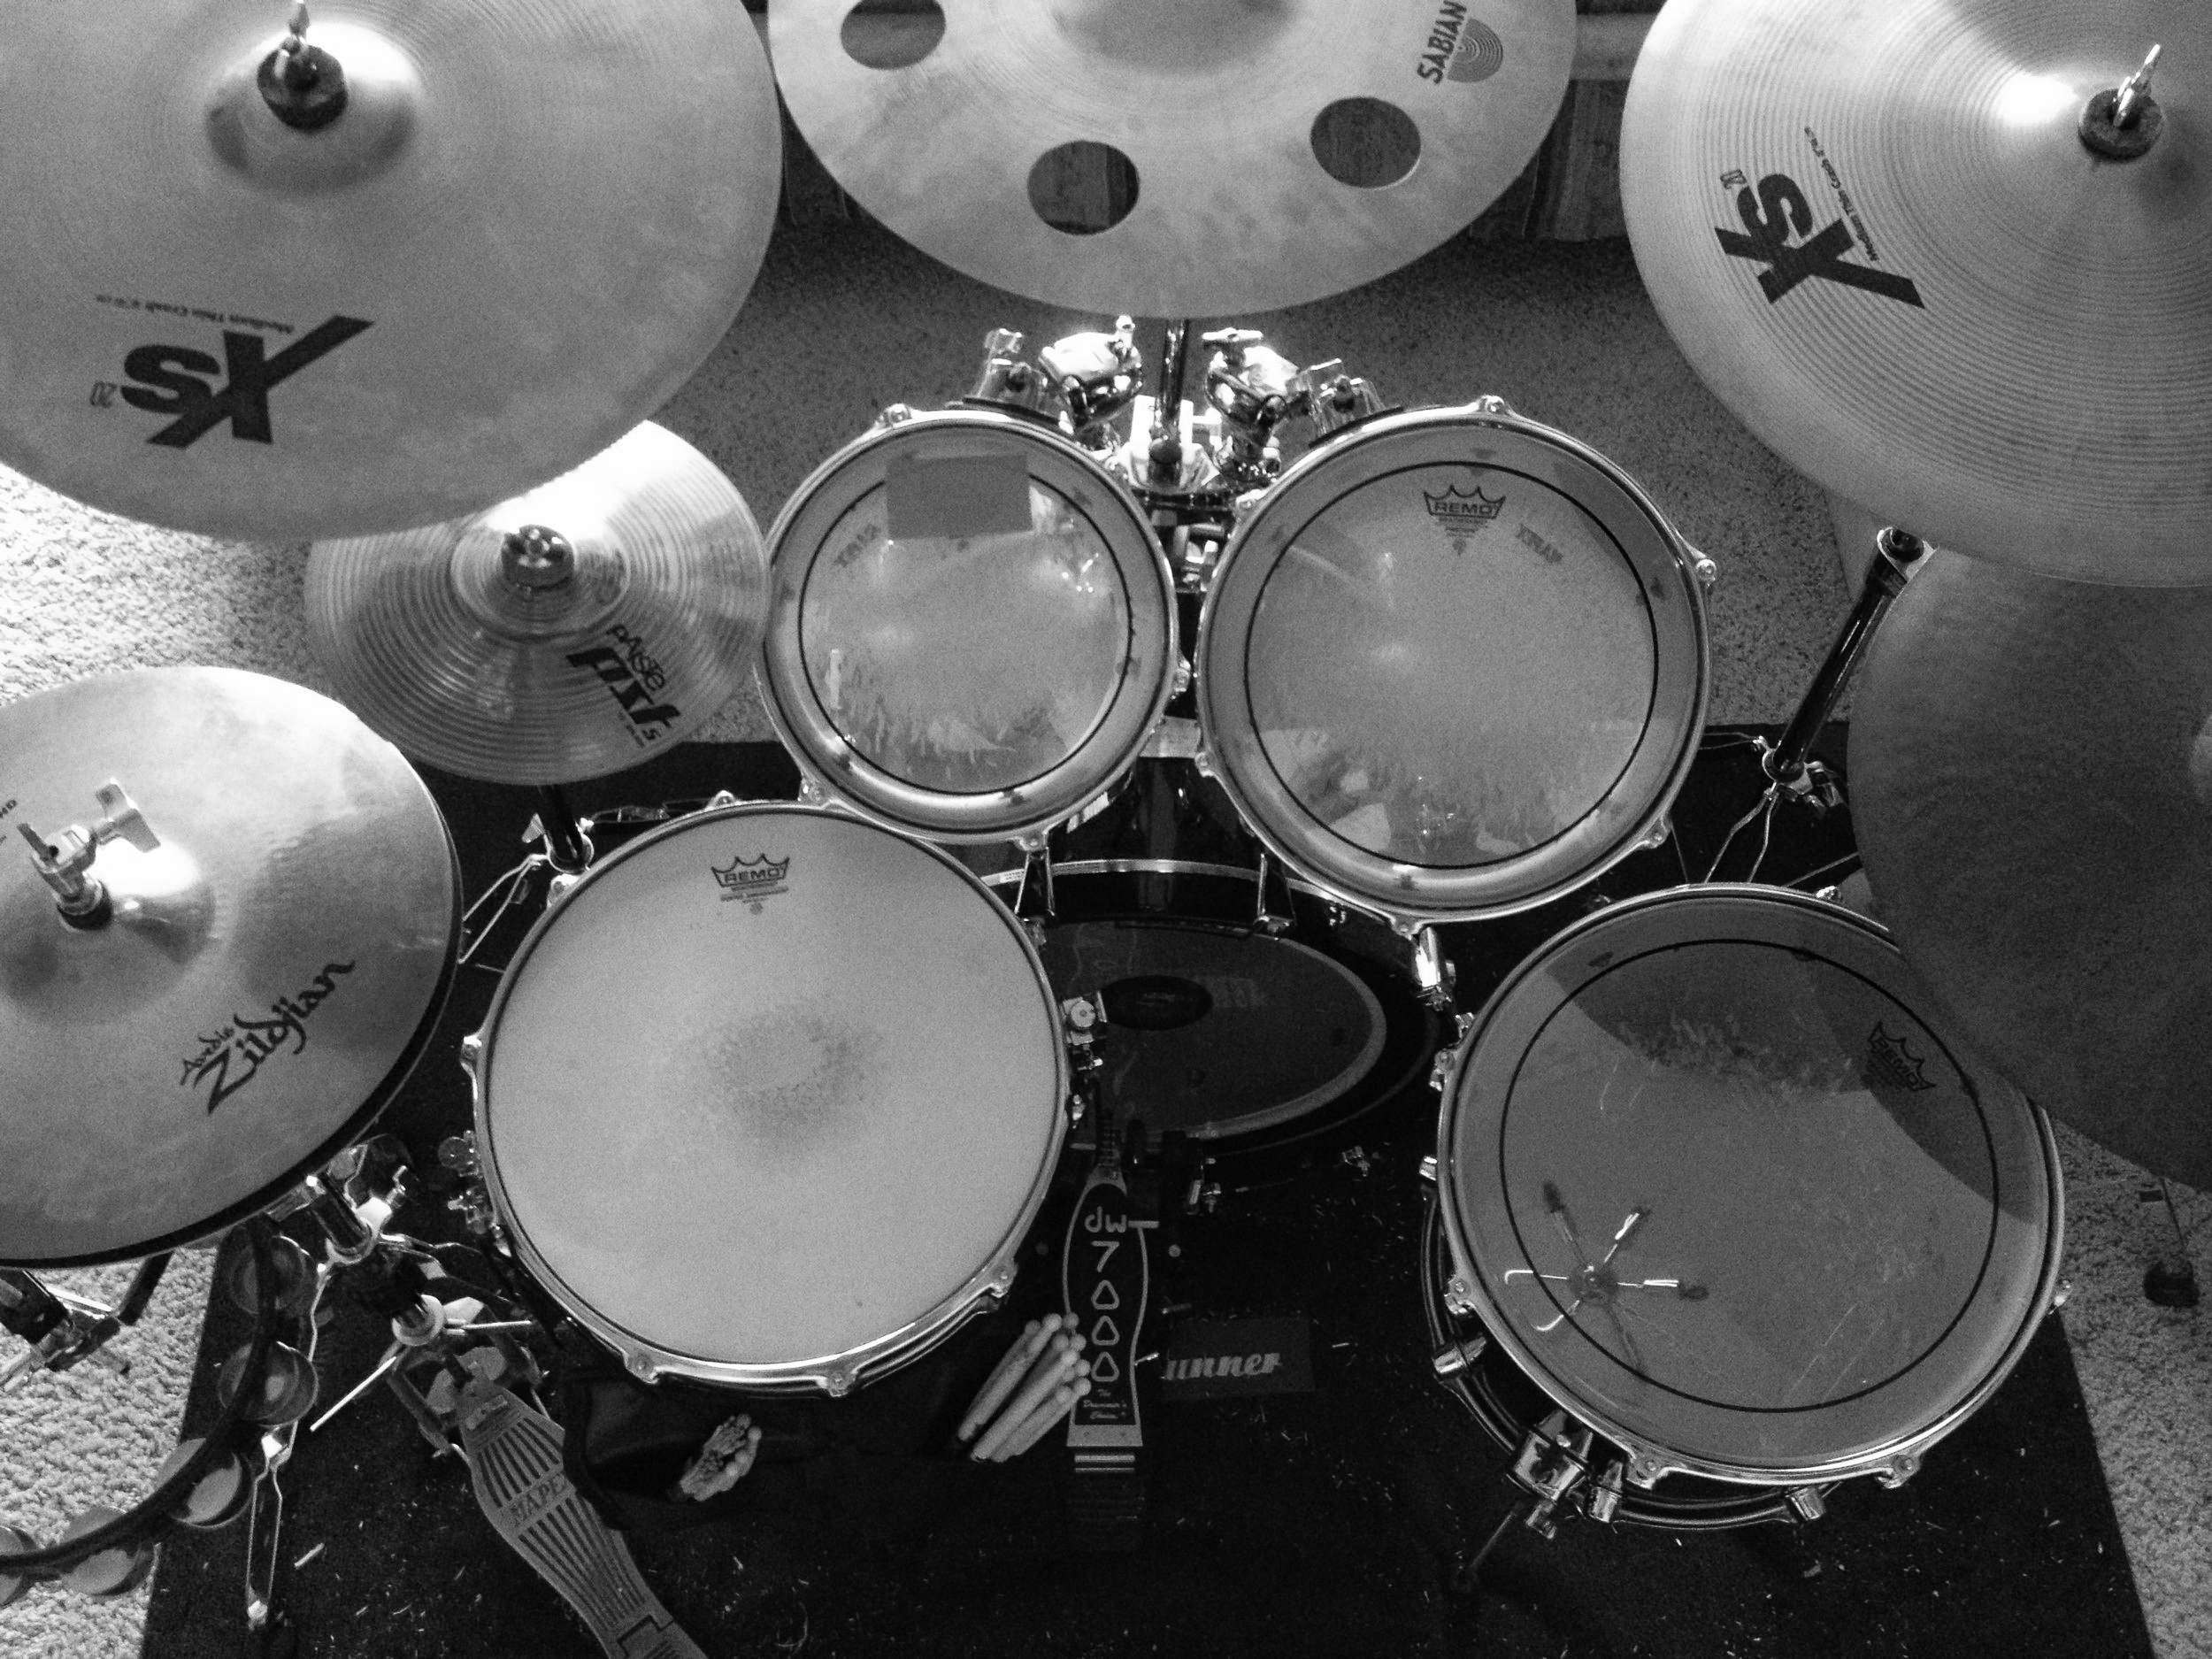 DW Performance series drum set with Zildjian, Sabian and AAX cymbals